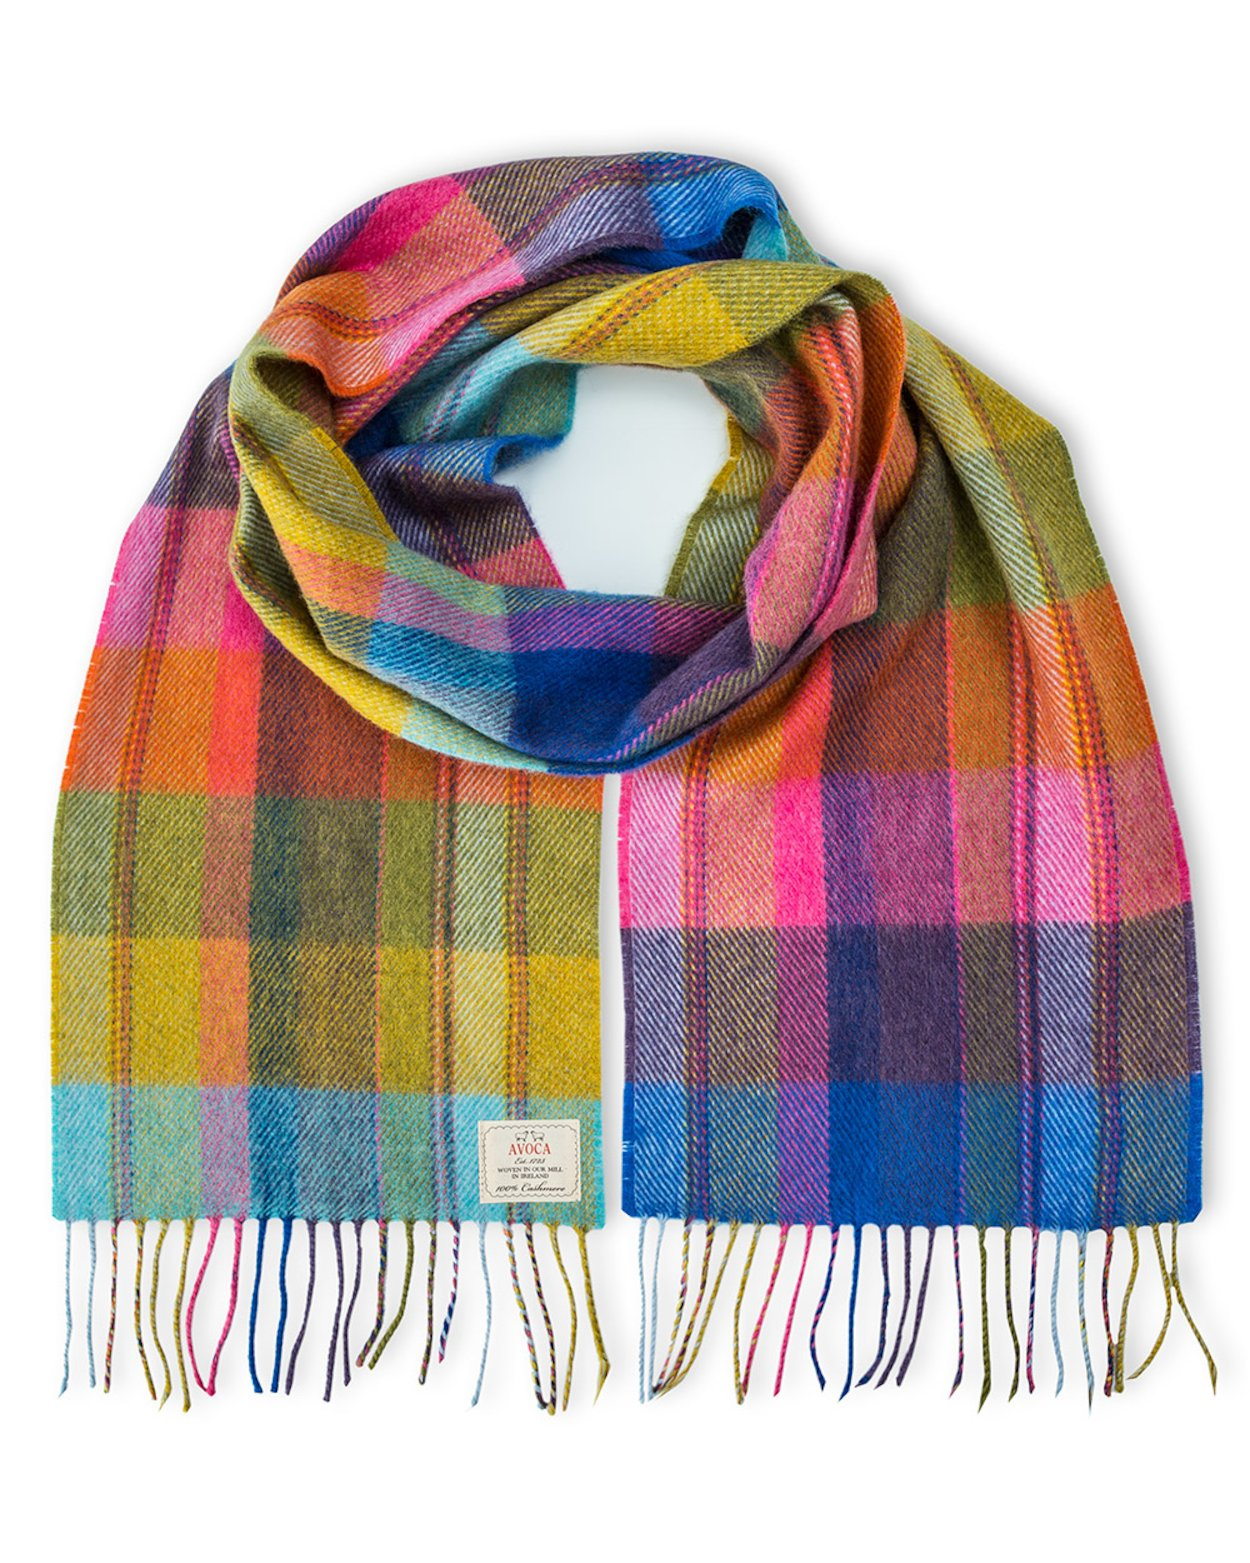 Avoca 100% Lambswool Scarf (Made in Ireland) Solstice design